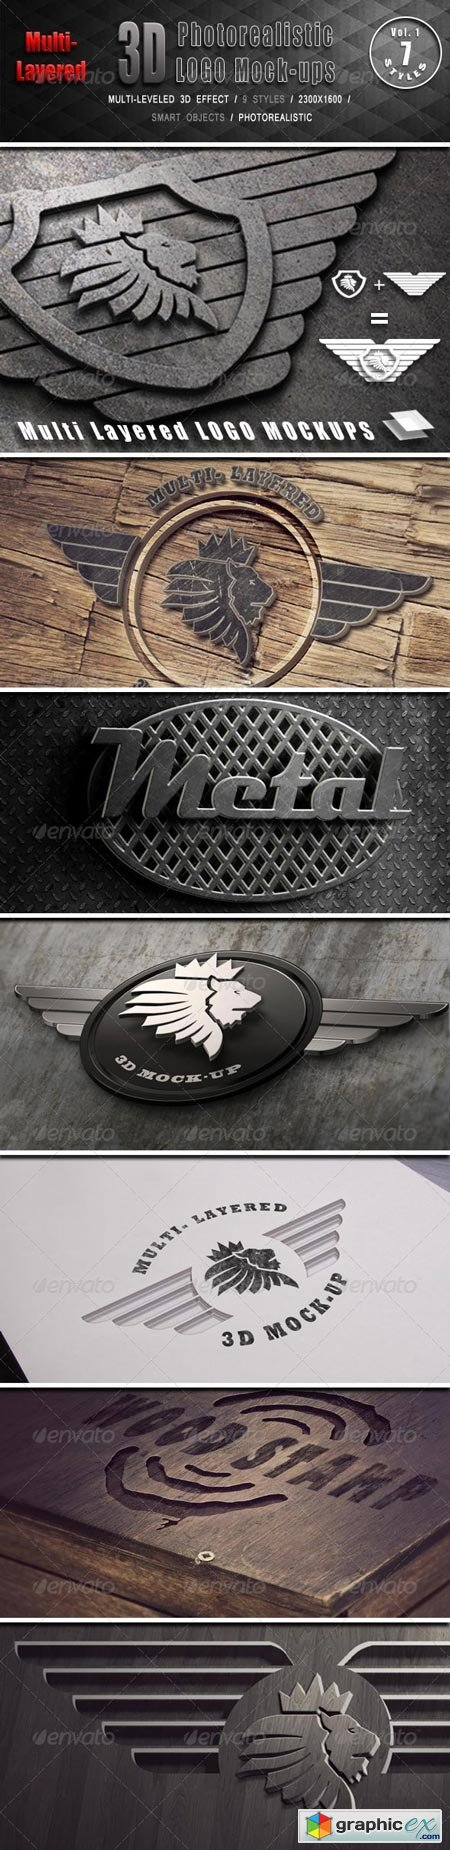 Photorealistic Multi-Layered 3D Logo Mock-Up 6453380